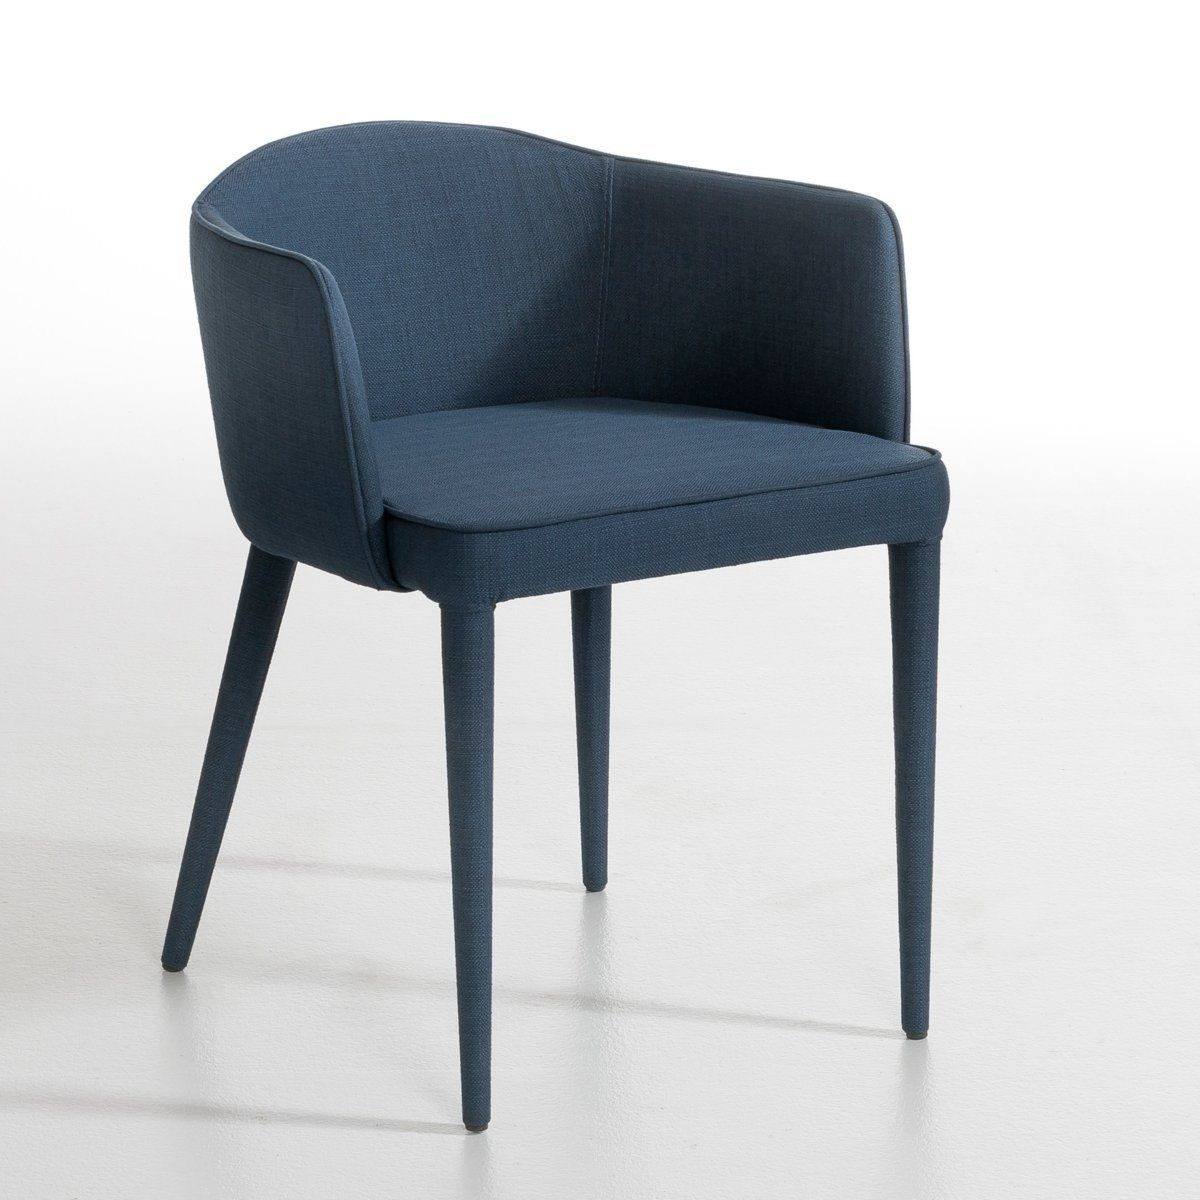 Fauteuil Chairs TableBristolHave Seat Pinterest Dining A De oeQdExrCWB